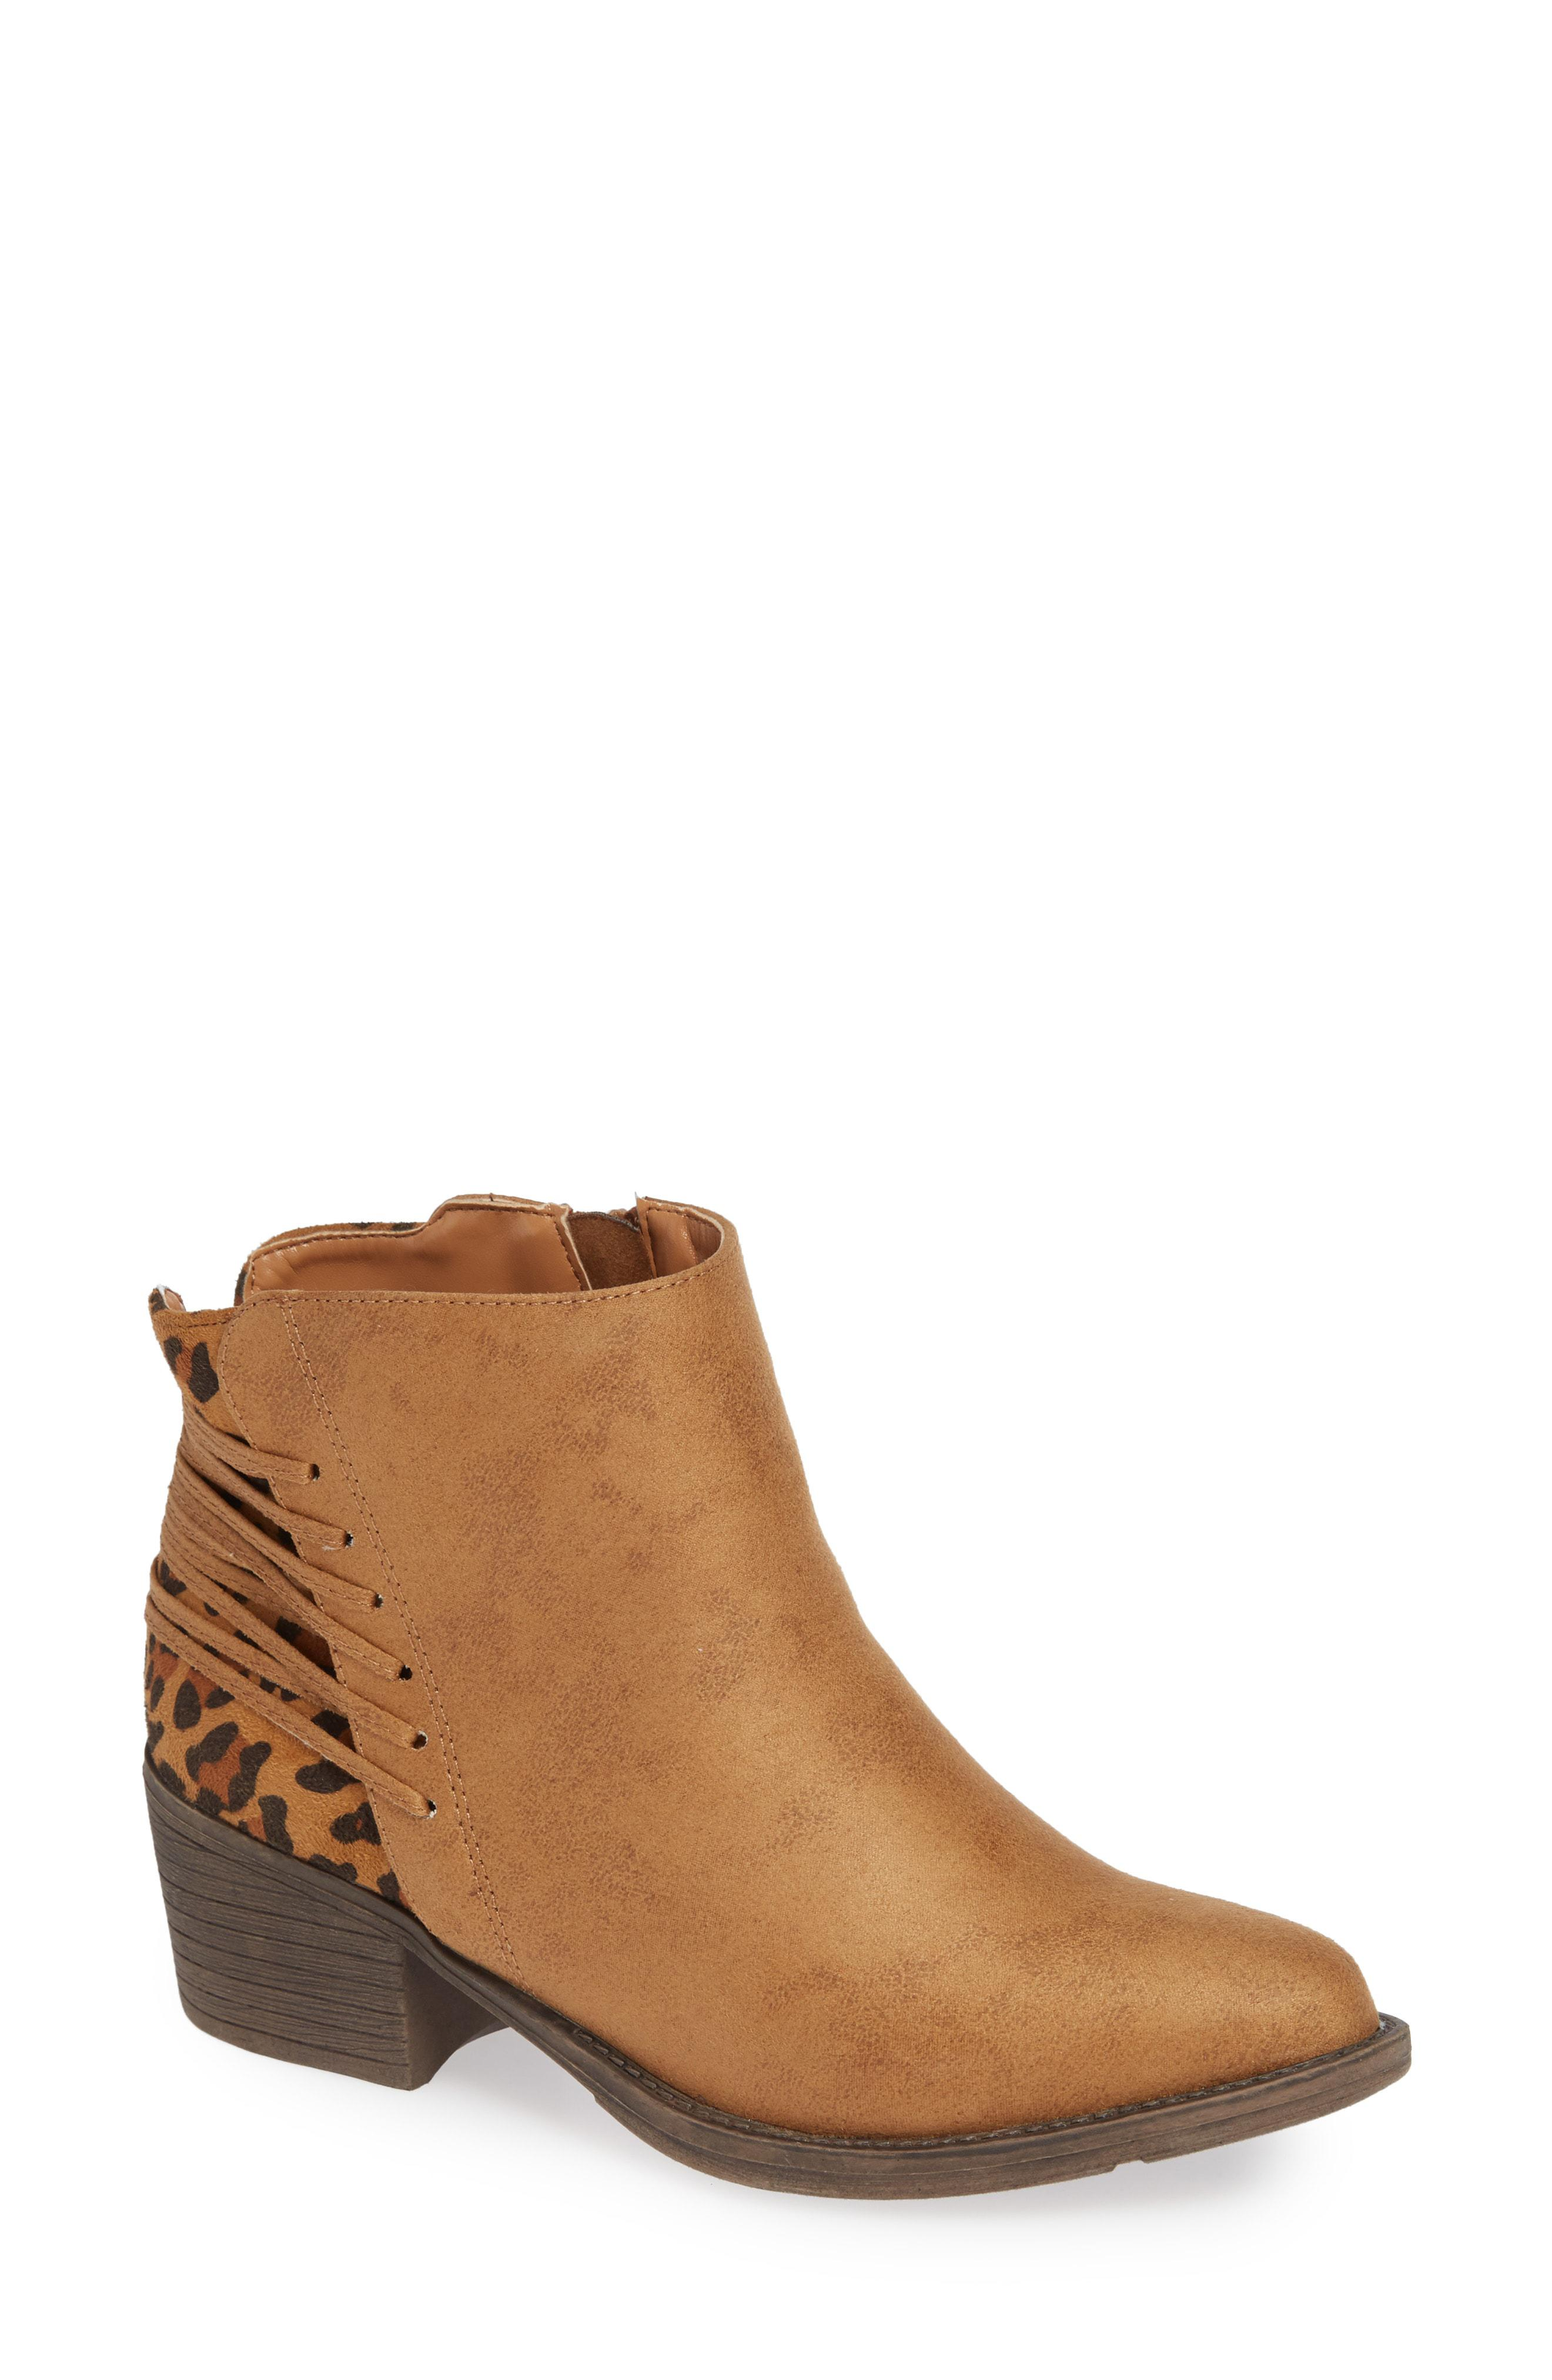 1c5ecf324d6d Lyst - Very Volatile Griselle Strapped Bootie in Brown